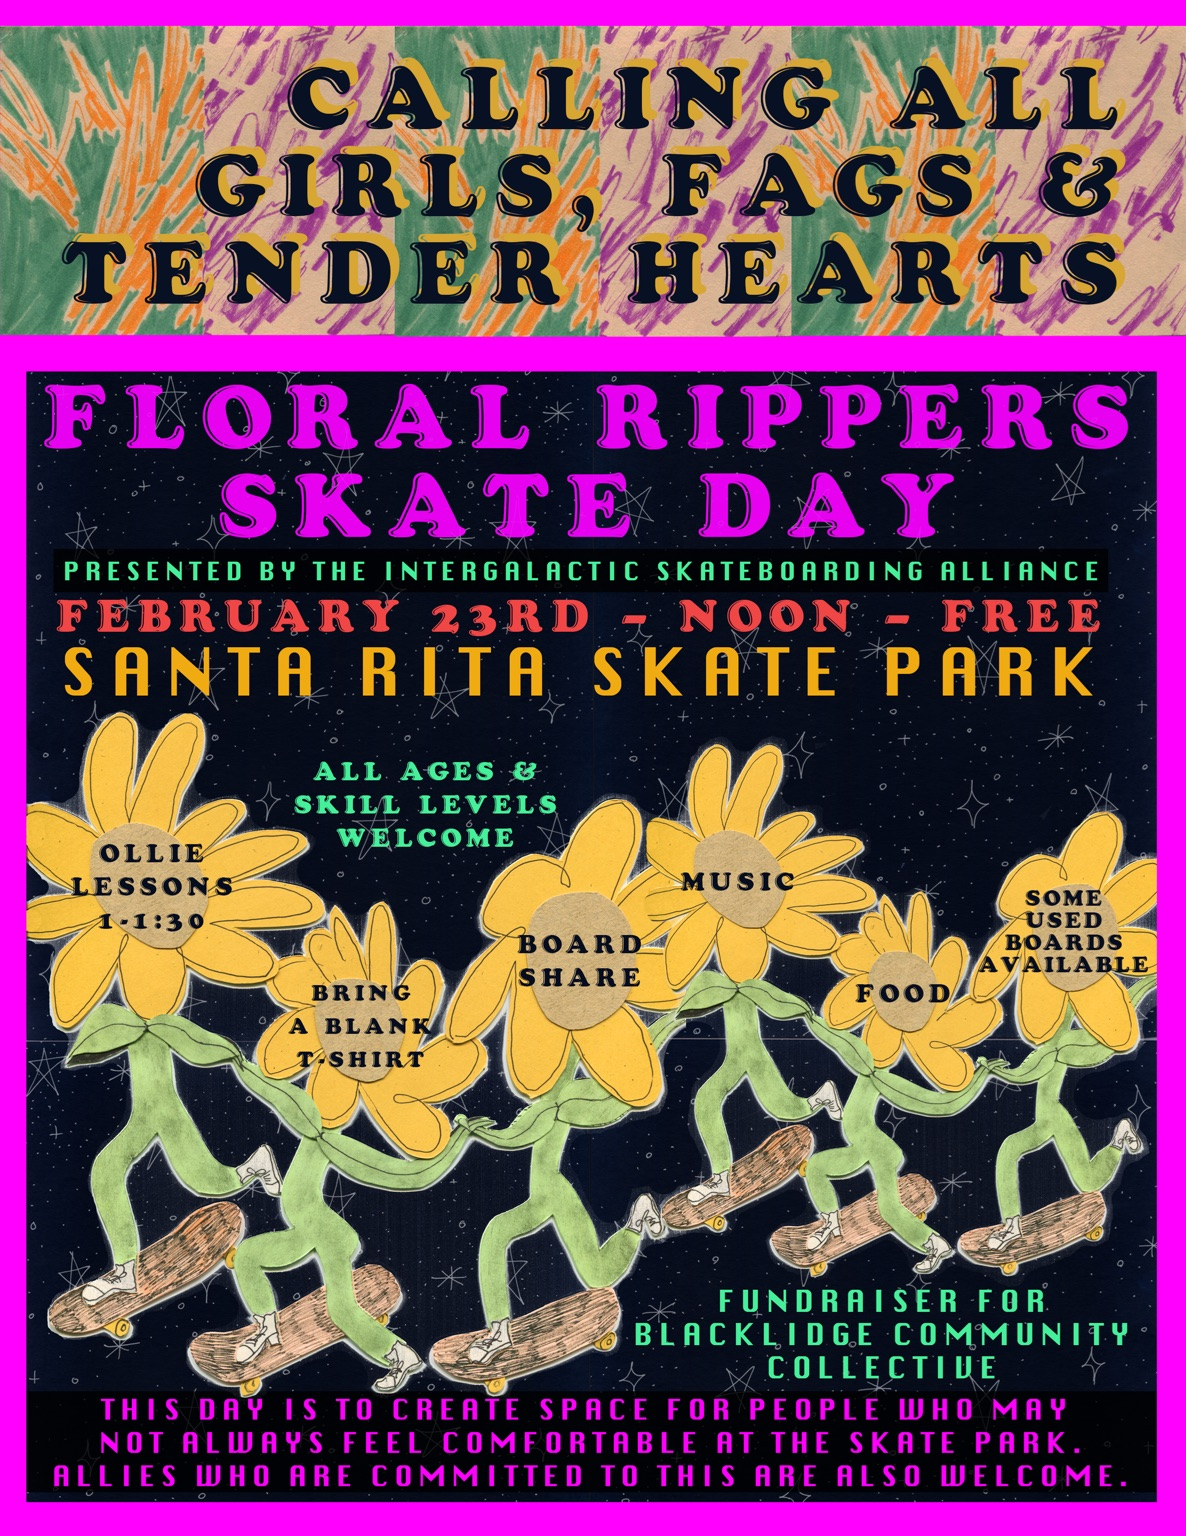 Floral Rippers Skate Day